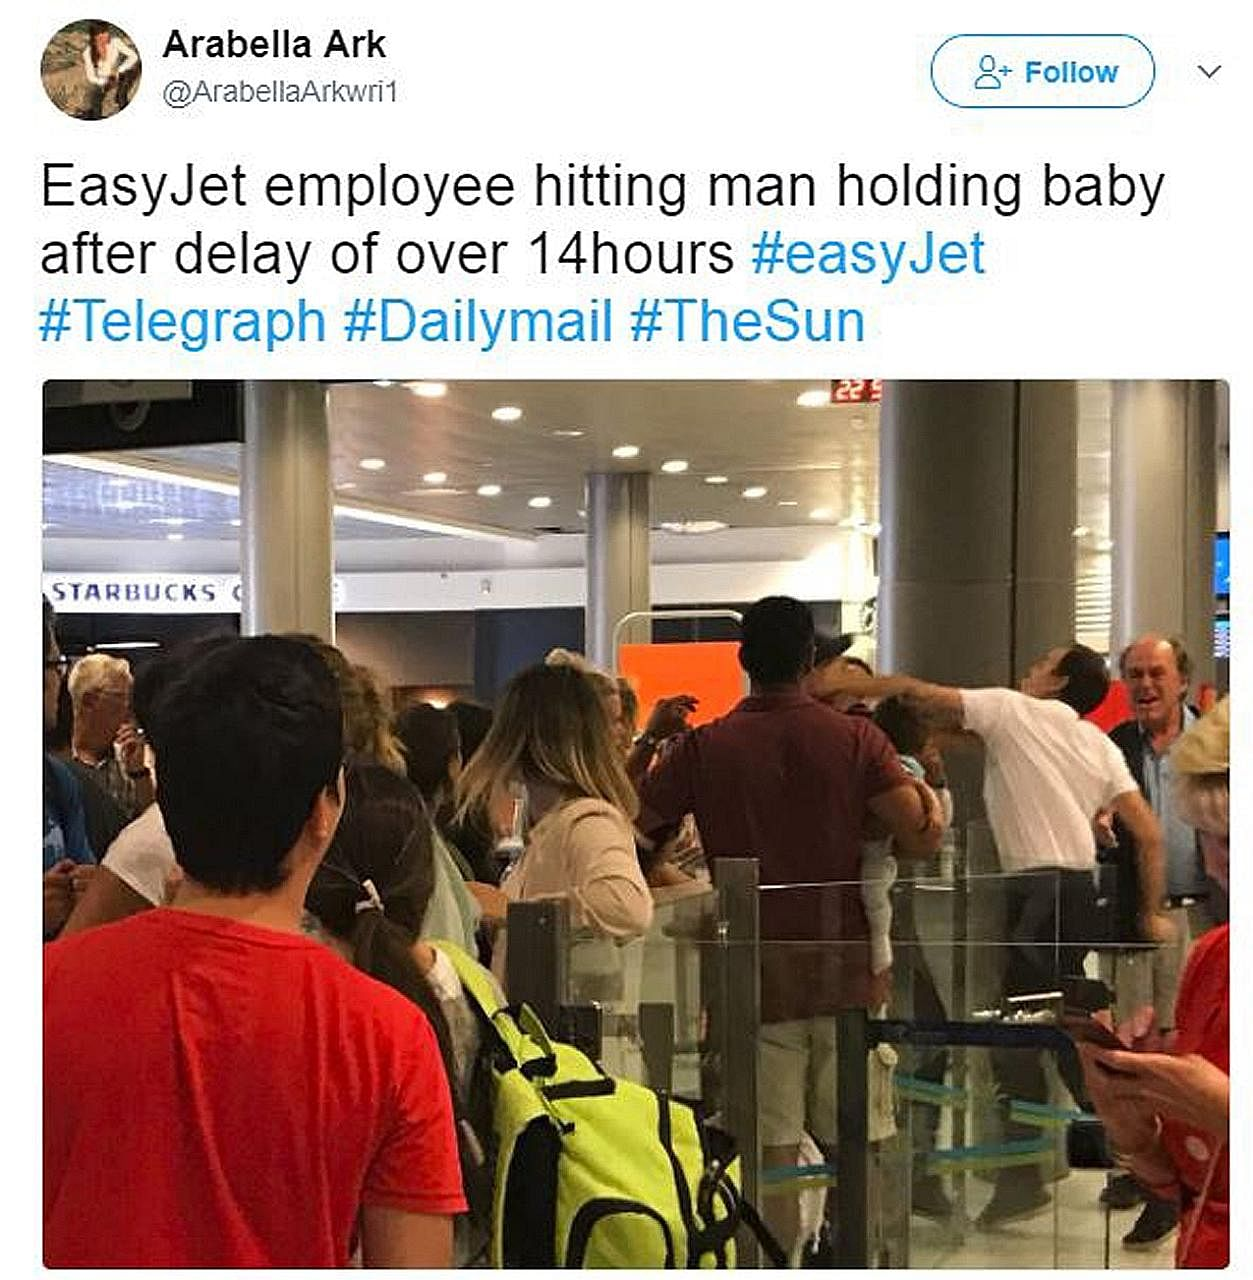 A photo posted by Ms Arabella Arkwright showing an airport worker punching a passenger in the face.